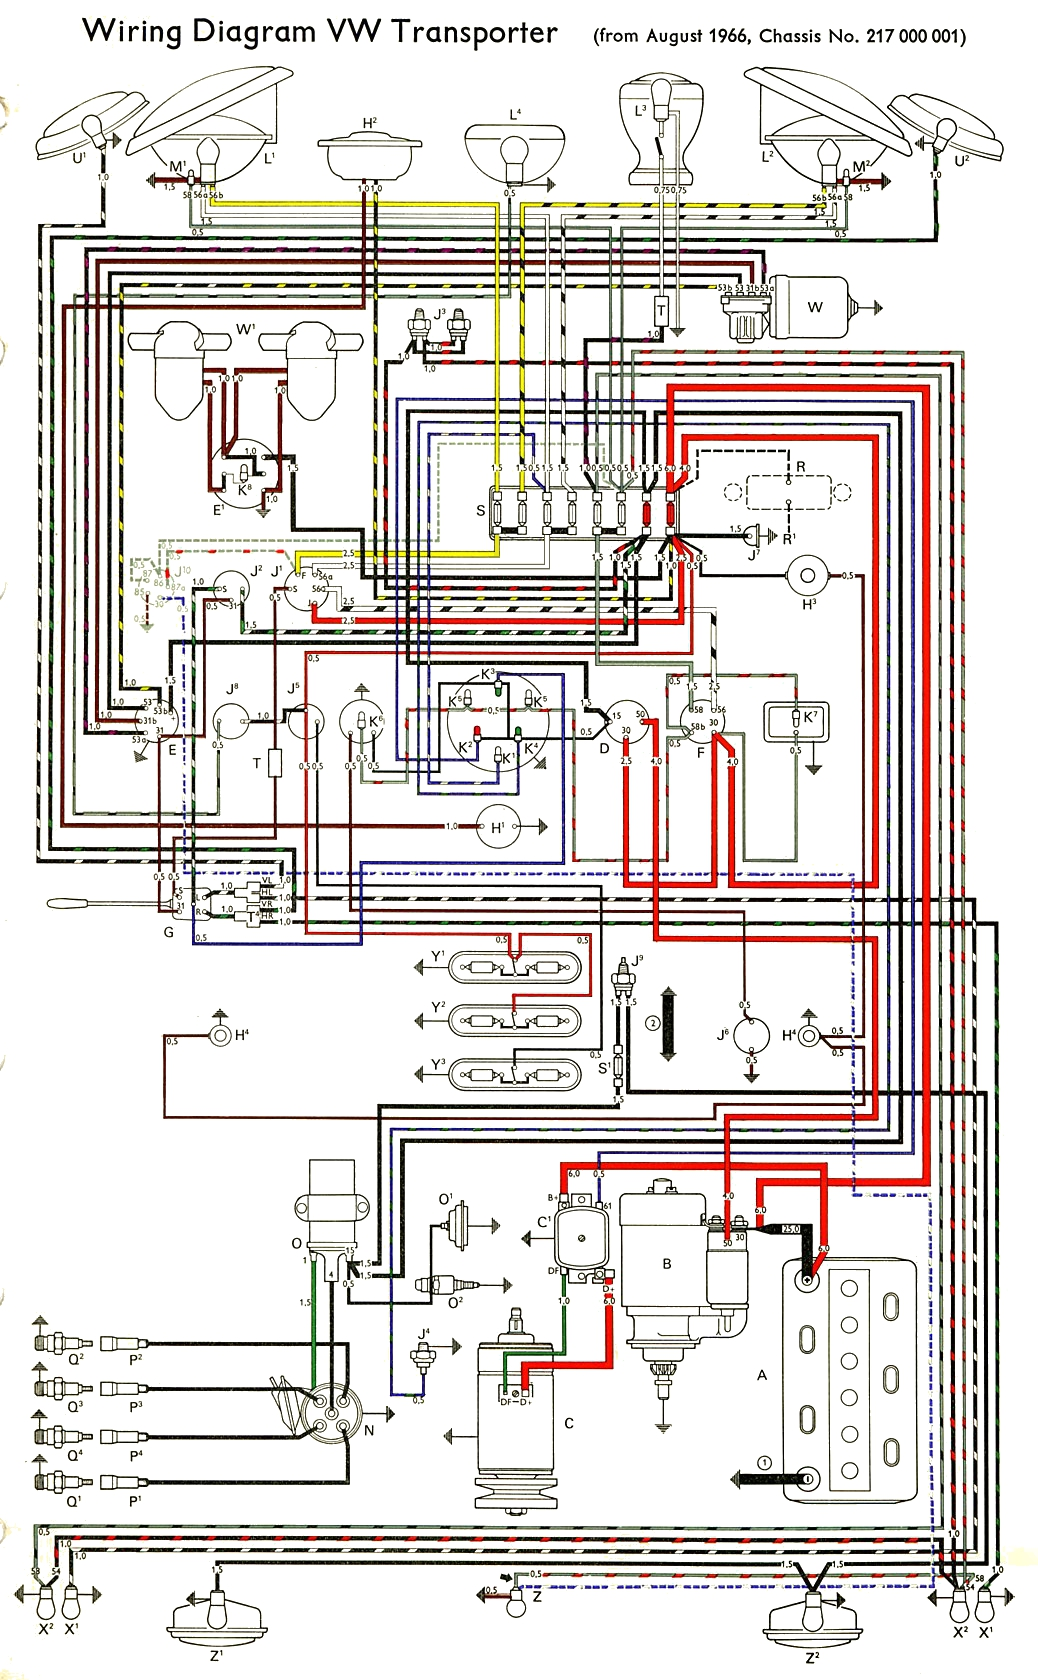 gl break sensor wiring diagram emergency light  hazard     wiring    the split screen van club  emergency light  hazard     wiring    the split screen van club